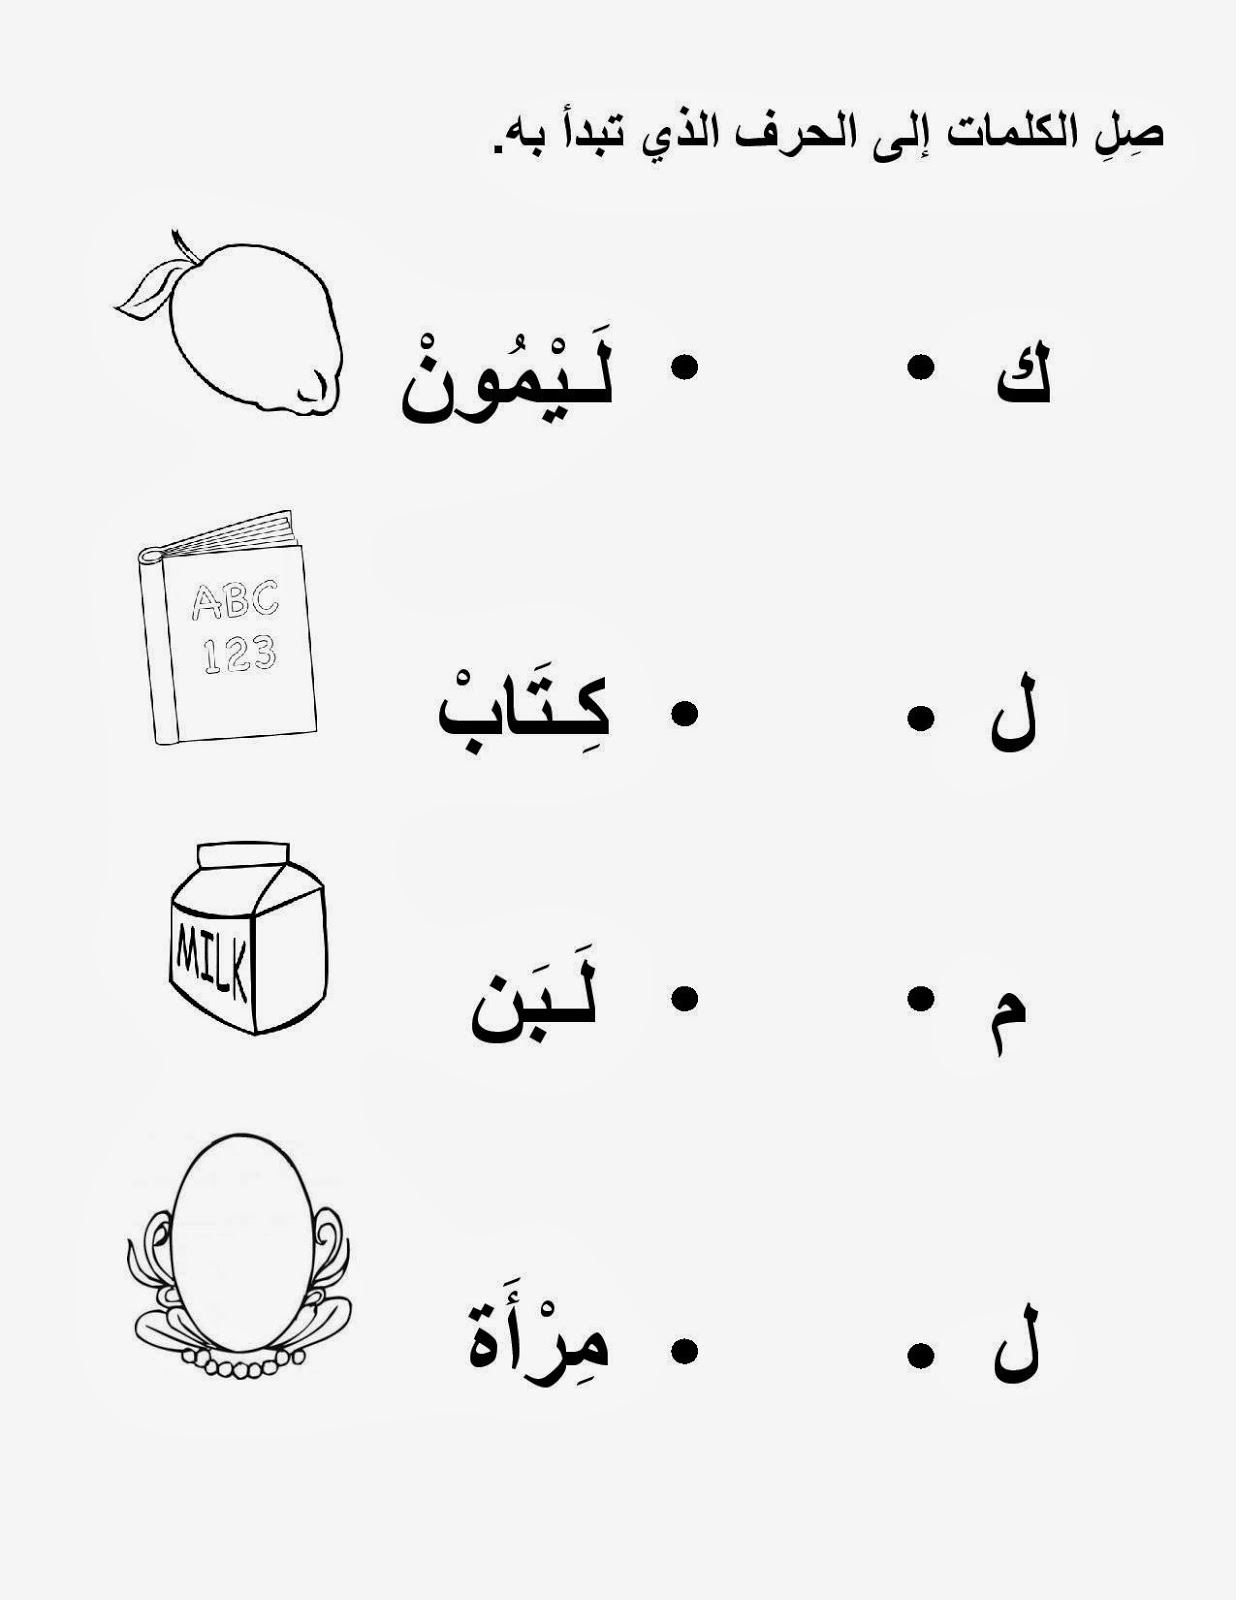 mikahaziq: Arabic worksheets for kids 20 Nov 2013